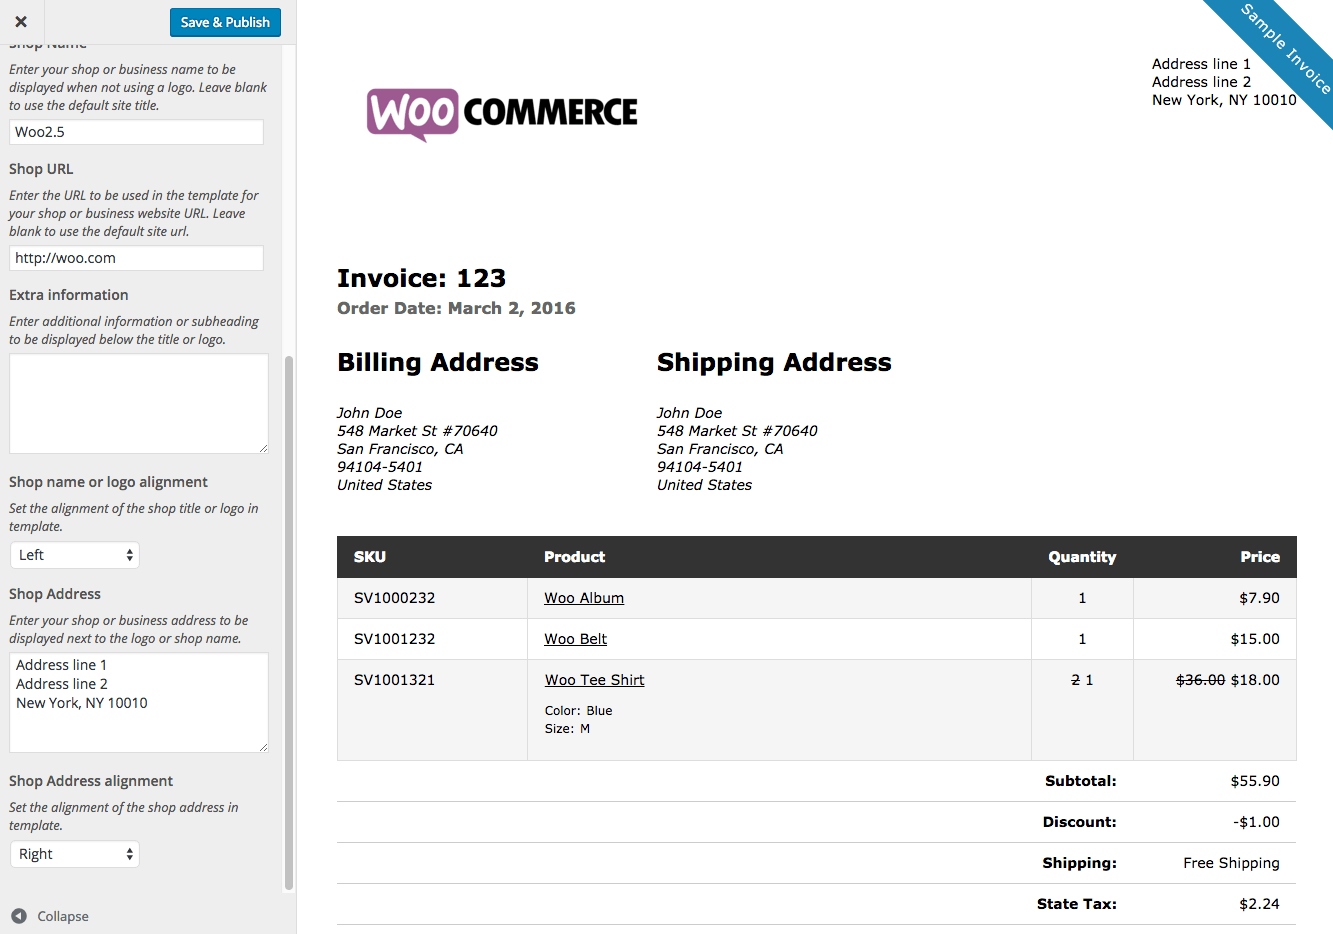 Pigbrotherus  Remarkable Woocommerce Print Invoices Amp Packing Lists  Woocommerce Docs With Engaging Woocommerce Print Invoices  Packing Lists Customizer With Easy On The Eye House Rental Receipt Template Also Car Tax Receipt In Addition Receipt Copy Format And Generate Fake Receipt As Well As Dental Receipt Sample Additionally Goods Receipt Form From Docswoocommercecom With Pigbrotherus  Engaging Woocommerce Print Invoices Amp Packing Lists  Woocommerce Docs With Easy On The Eye Woocommerce Print Invoices  Packing Lists Customizer And Remarkable House Rental Receipt Template Also Car Tax Receipt In Addition Receipt Copy Format From Docswoocommercecom